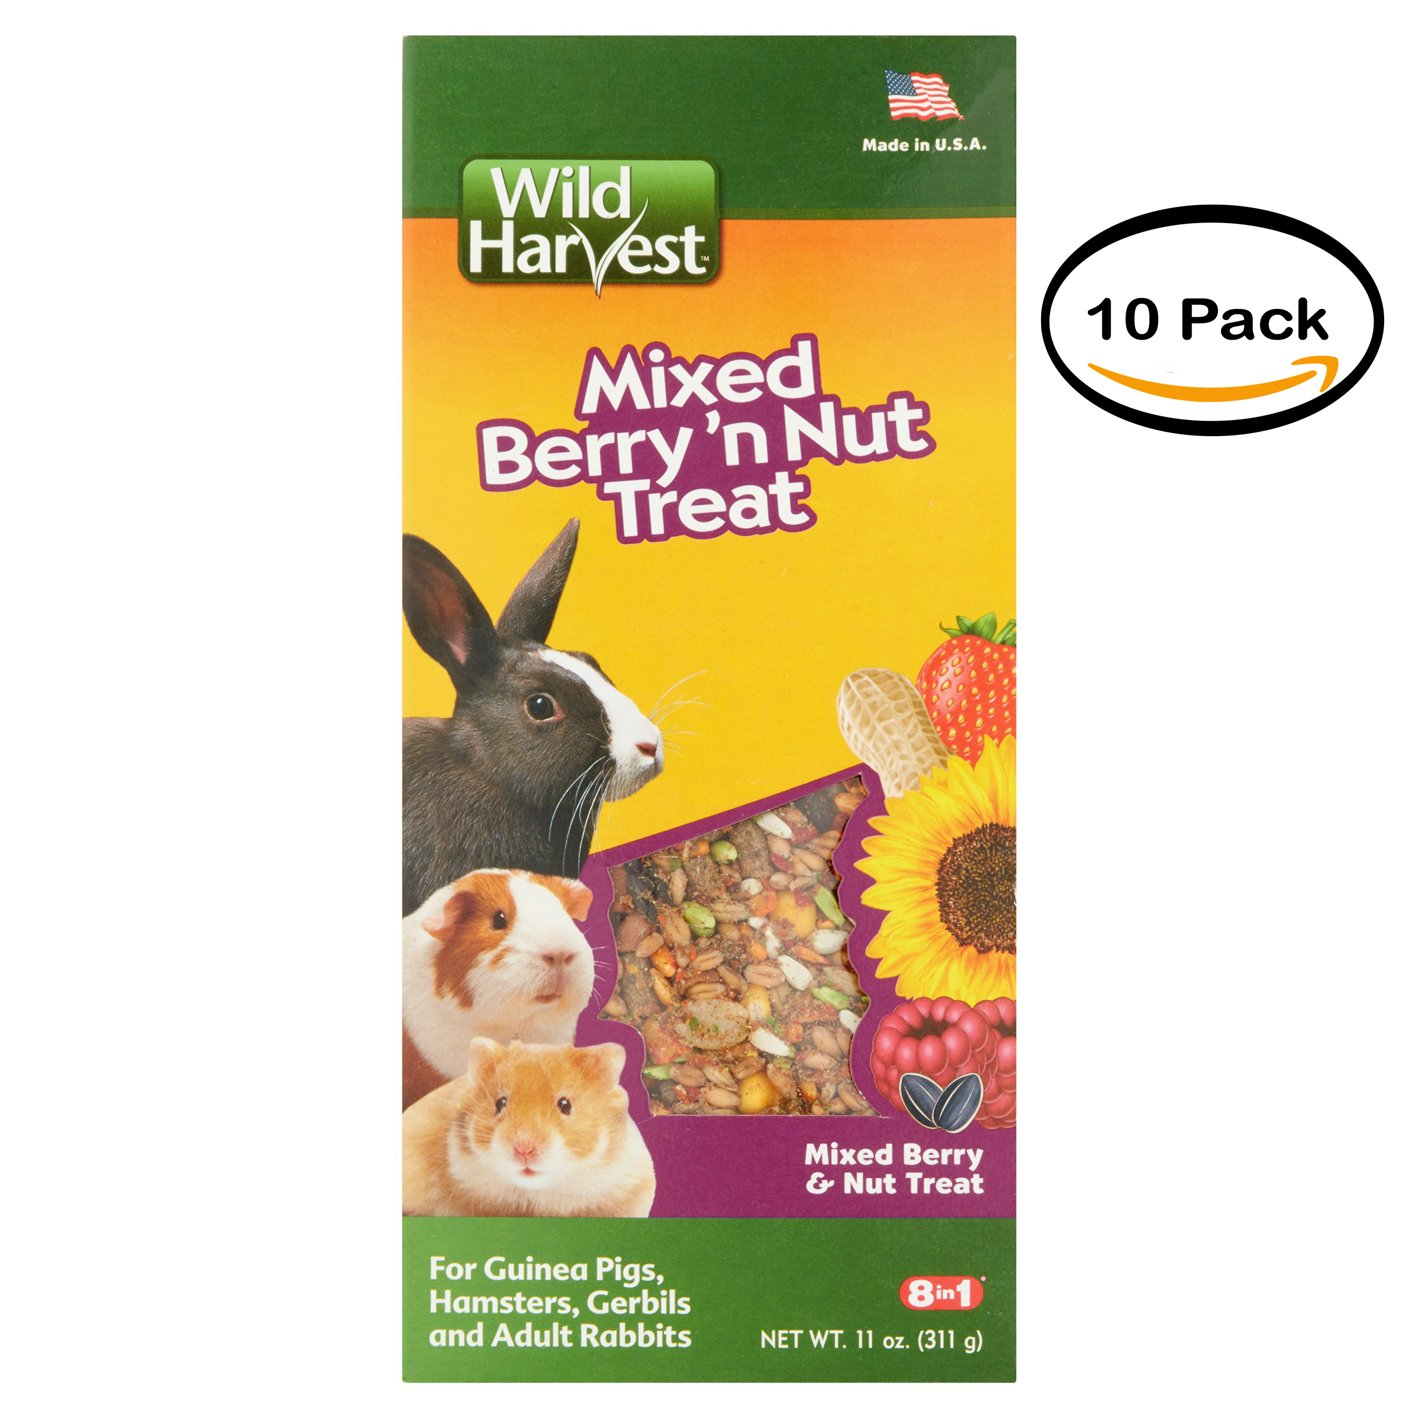 PACK OF 12 - 8In1 Pet Products: Treat For Small Animals Wild Harvest Mixed Berry & Nut Treat, 11 Oz